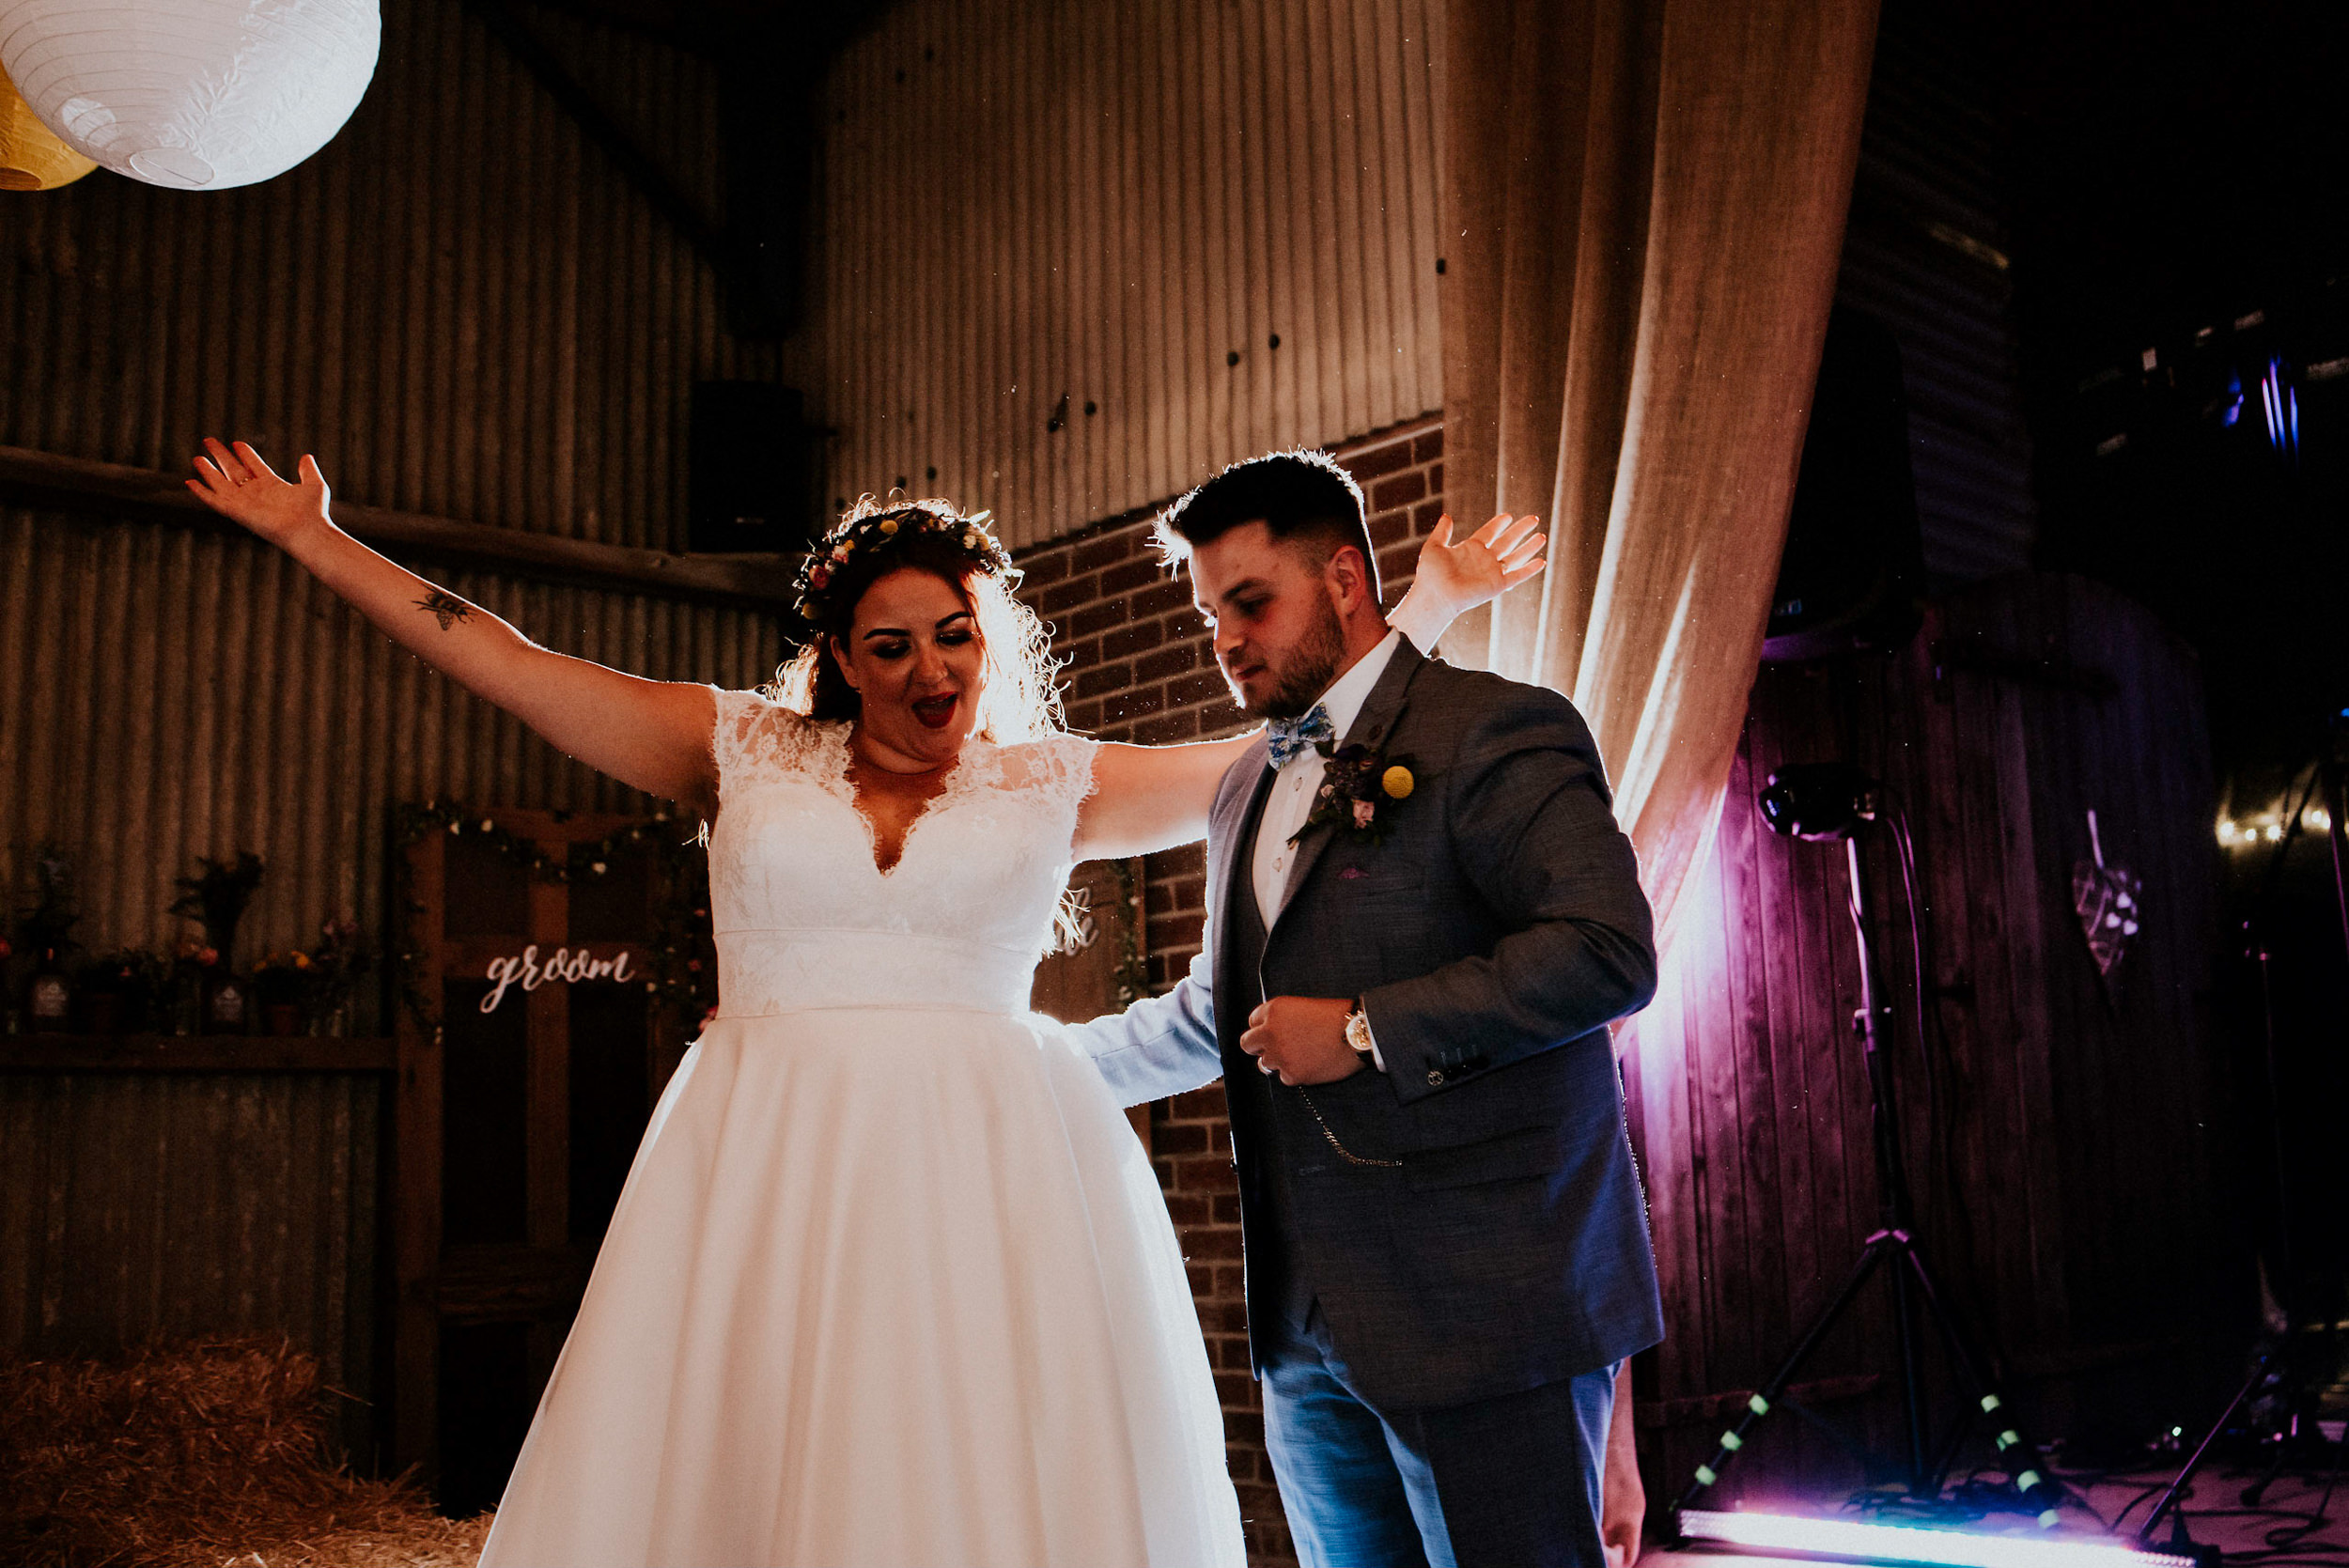 berts-barrow-boho-barn-wedding-photography-yorkshire-shutter-go-click-91.jpg